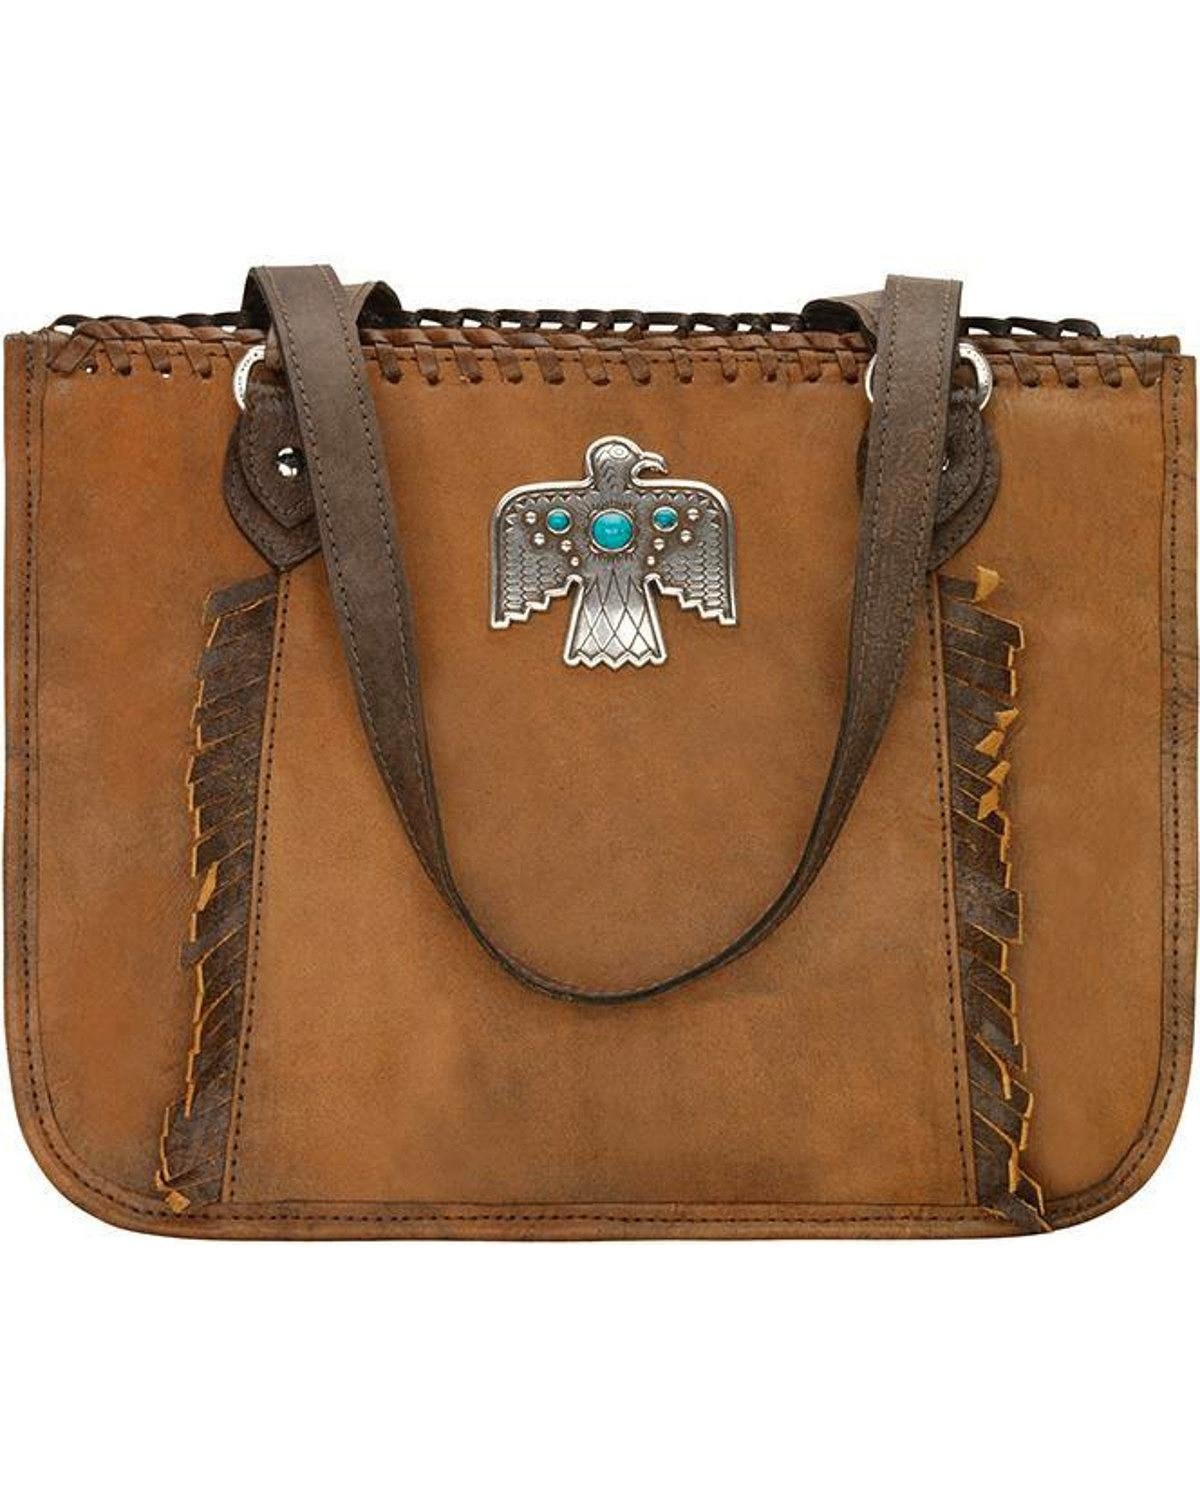 American West Women's Thunderbird Ridge Multi-Compartment Zip Top Tote Distressed Brown One Size